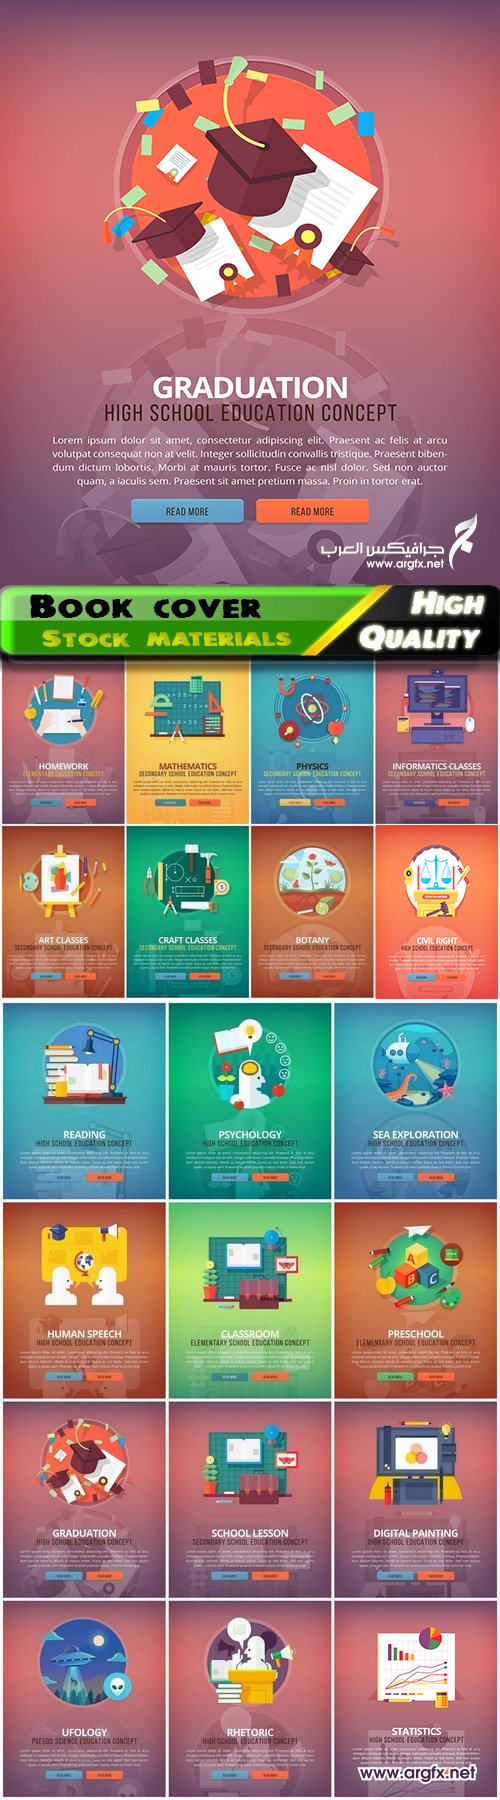 Educational book cover flat design with interesting themes 2 20 Eps